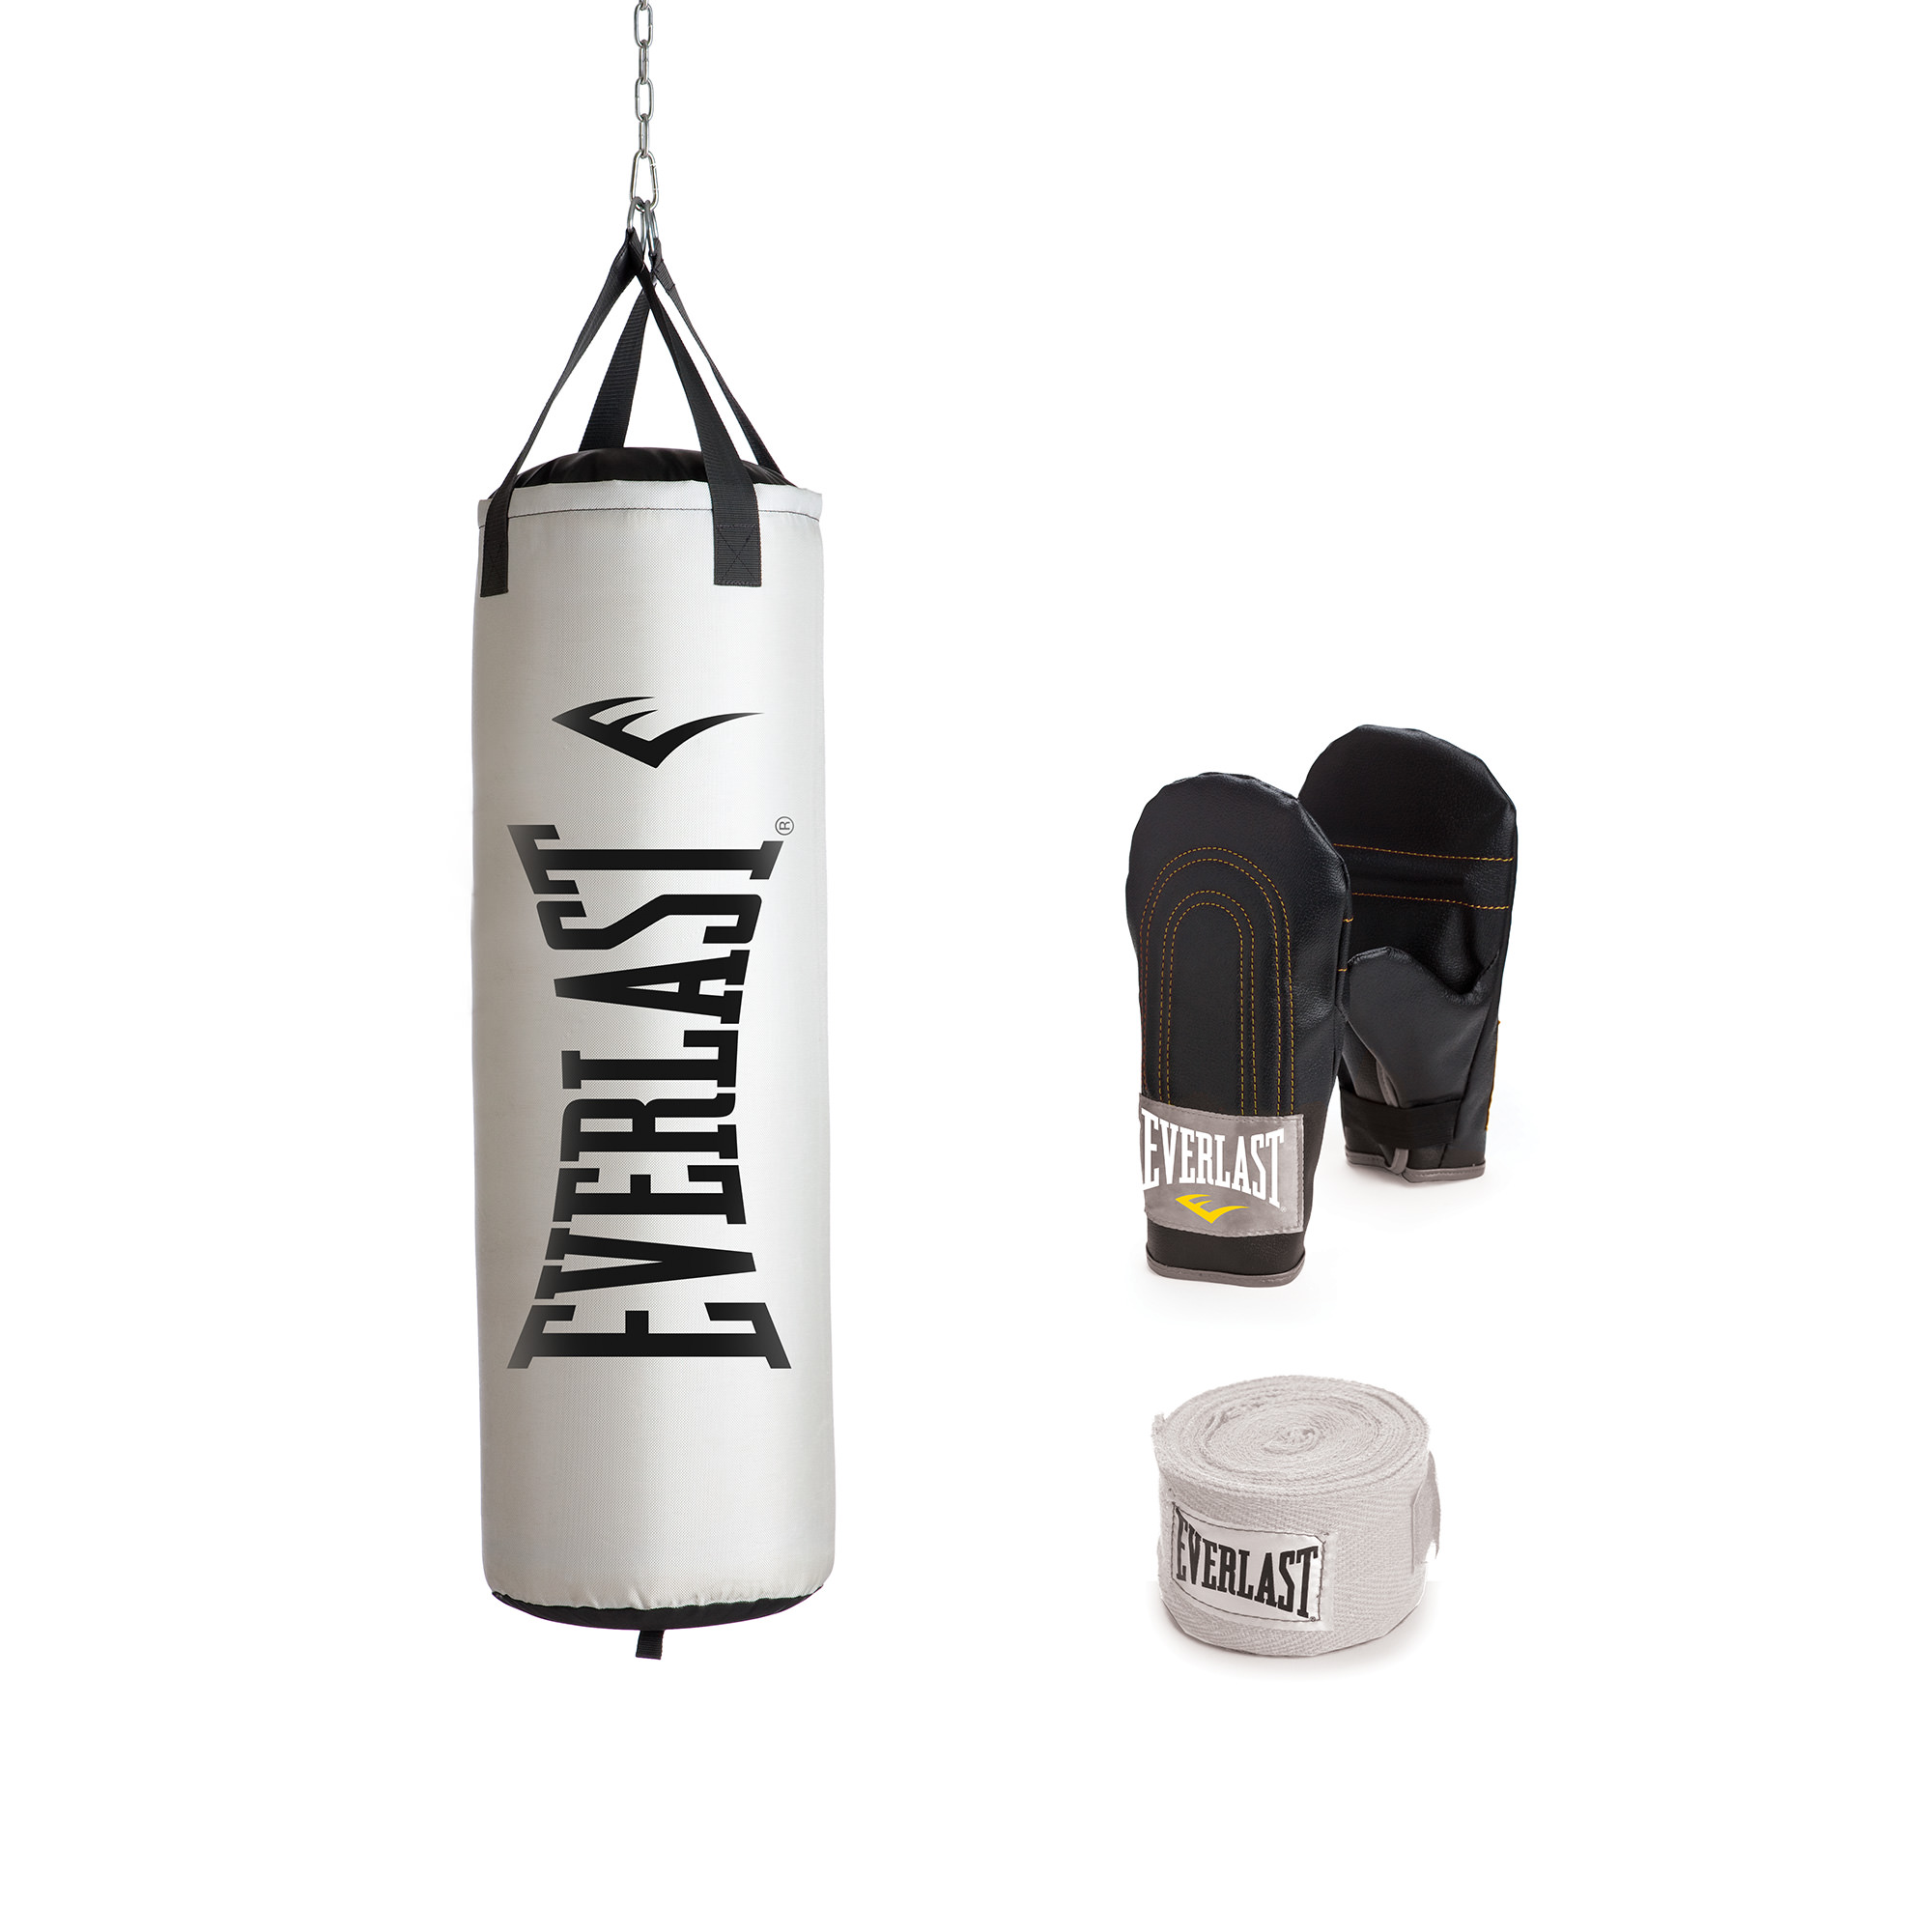 Everlast Heavy Bag Kit Reviewed In 2020